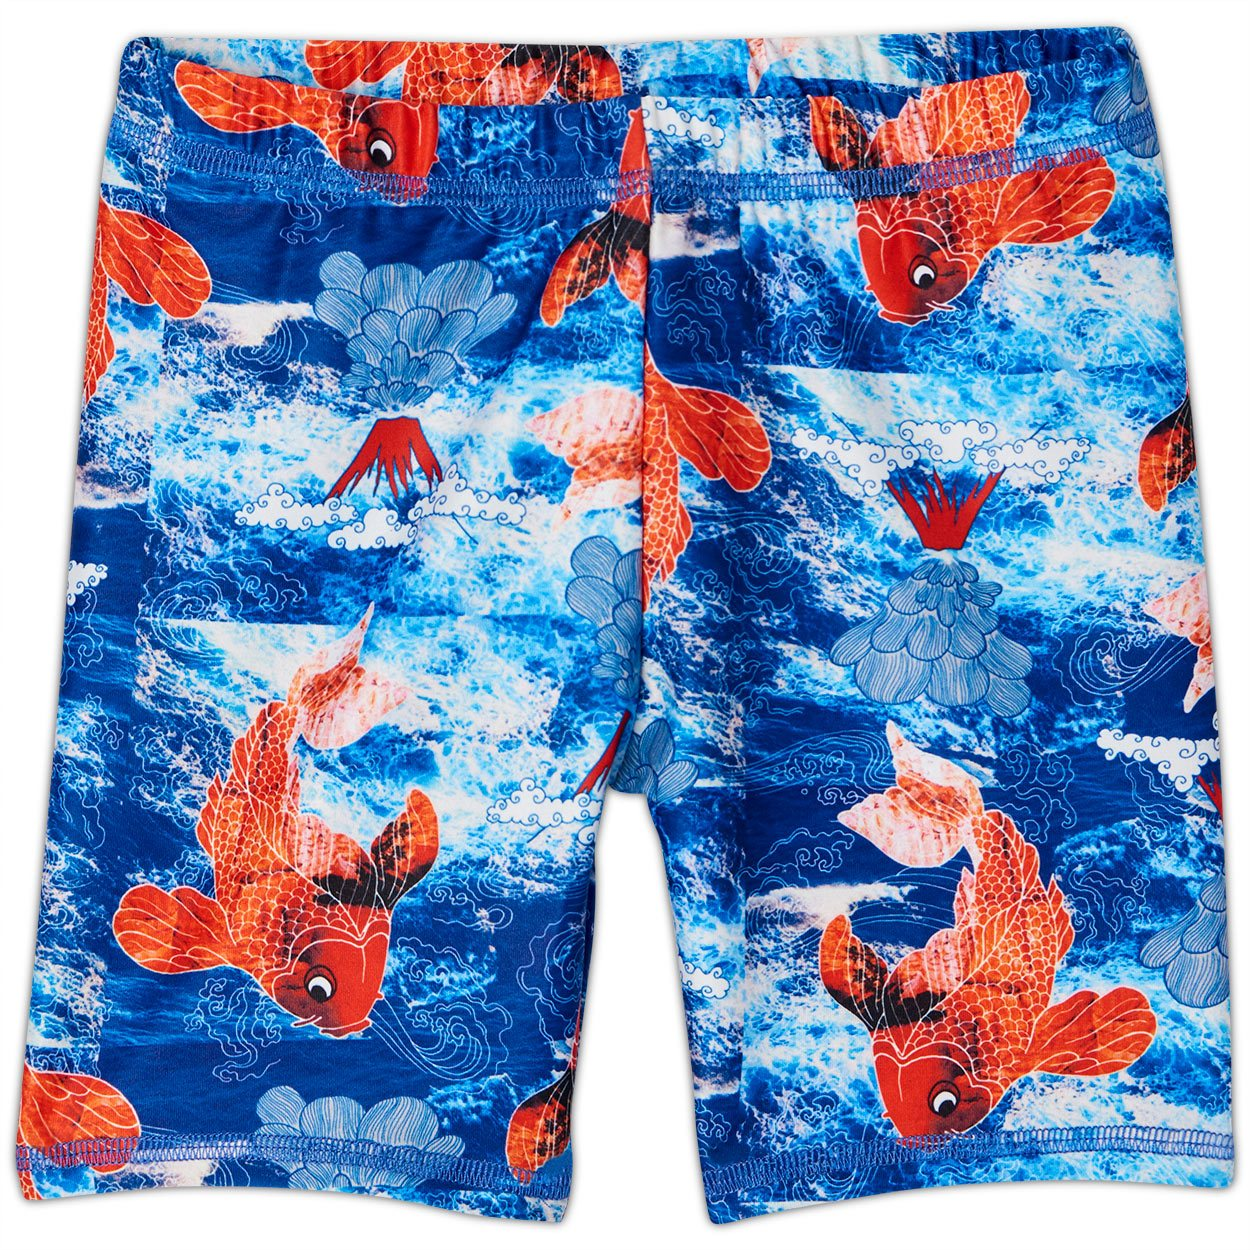 Koi Fish Sunblocker Shorts UPF 50+